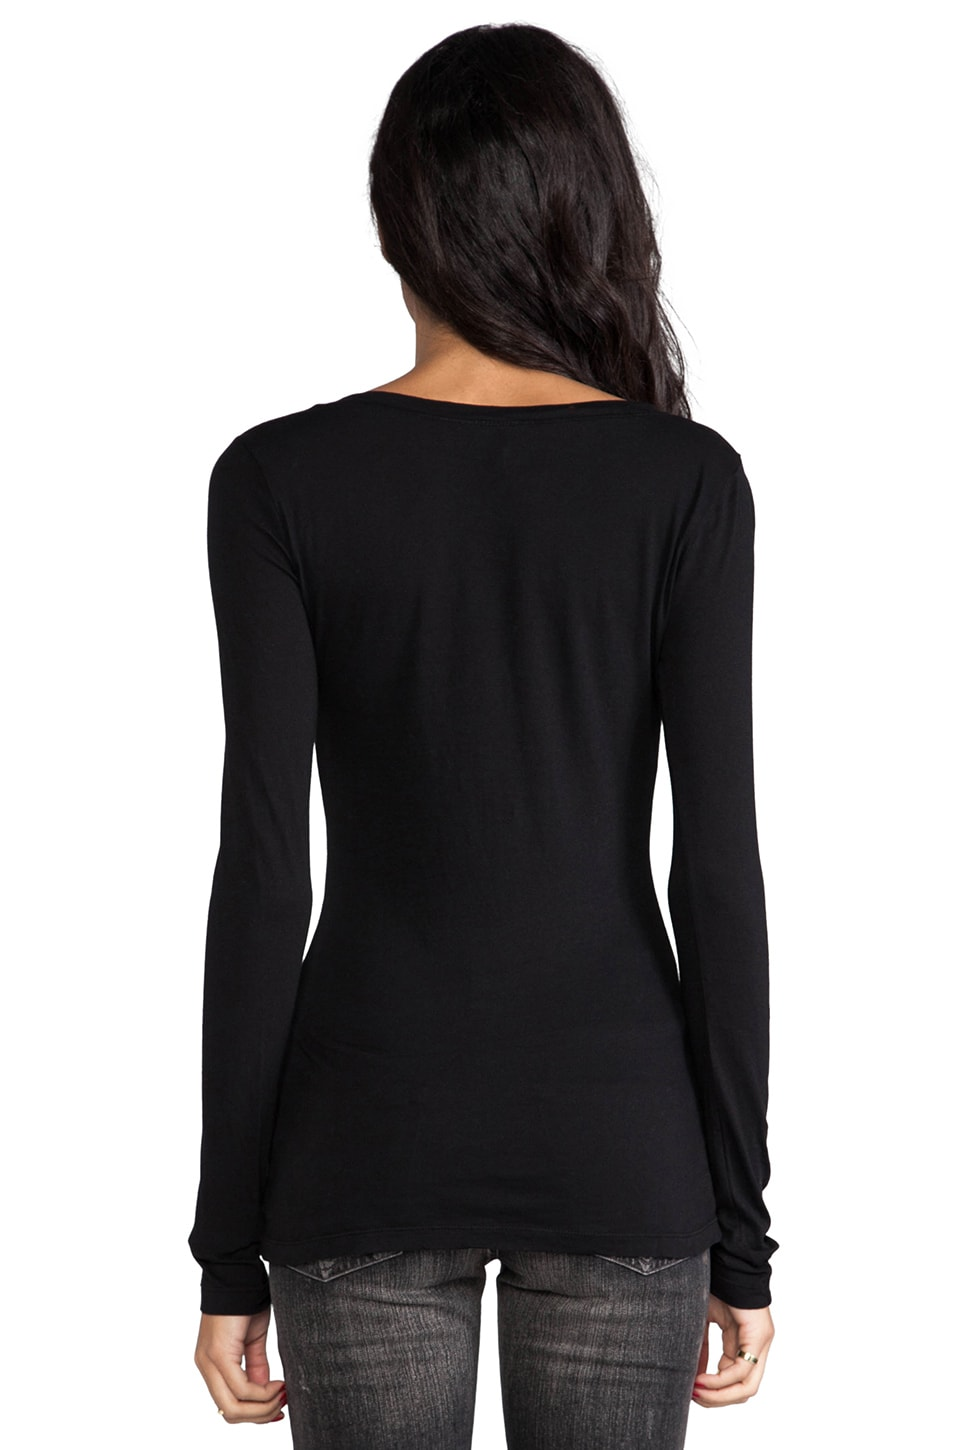 Bobi Light Weight Jersey V Neck Long Sleeve in Black